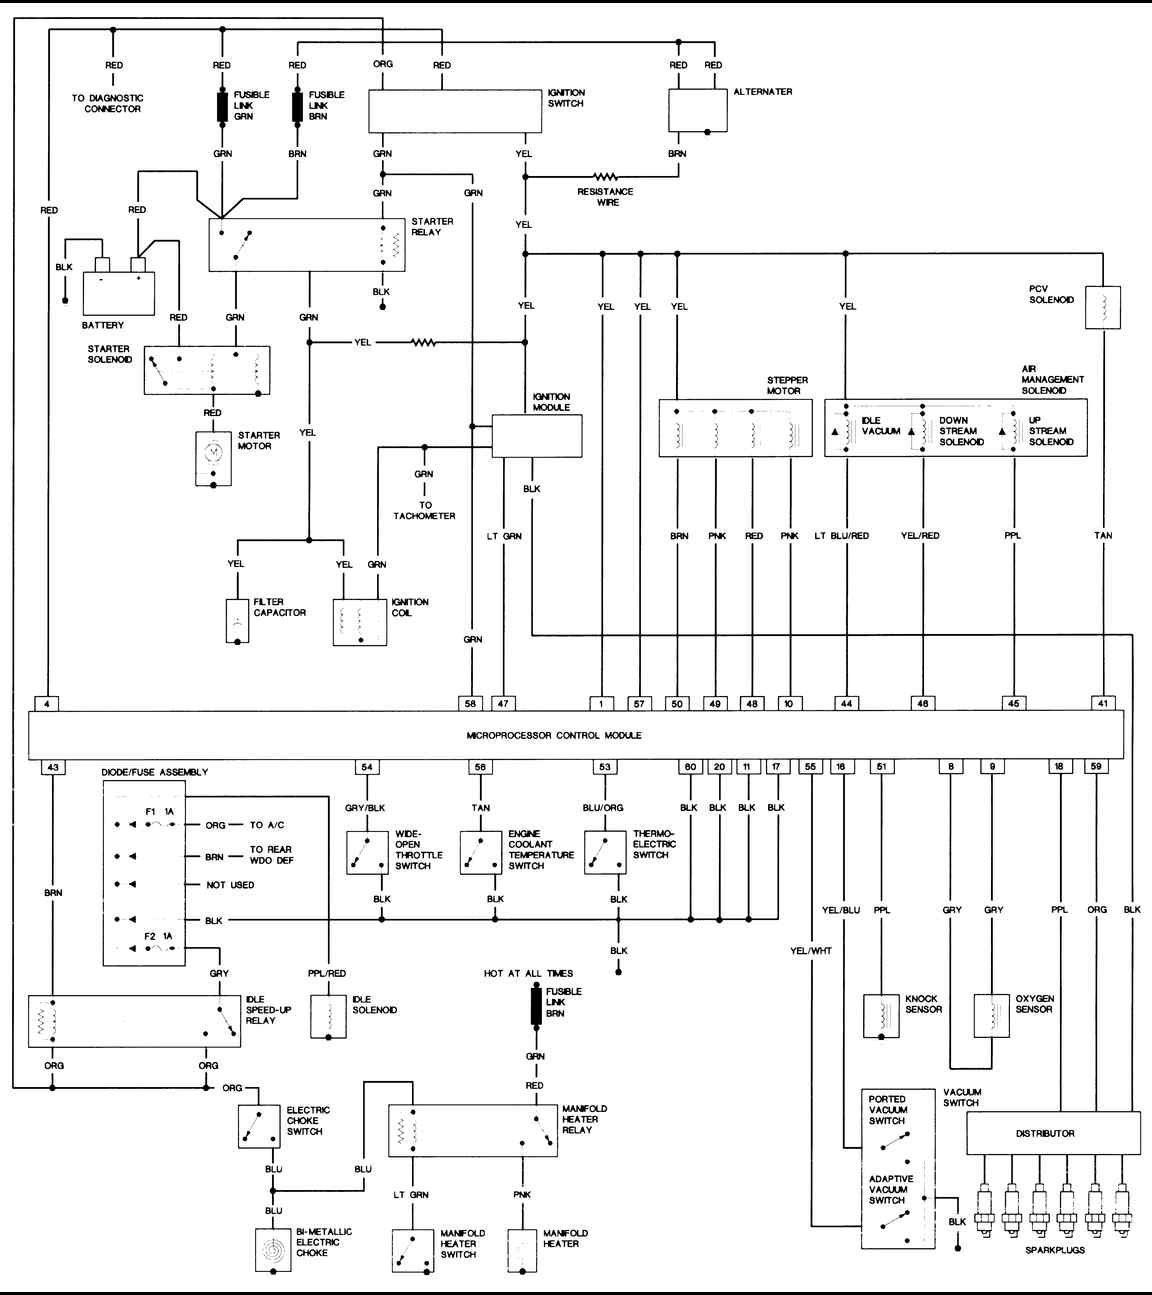 Free Jeep Wiring Diagrams - Wiring Diagram - Jeep Wrangler Wiring Diagram